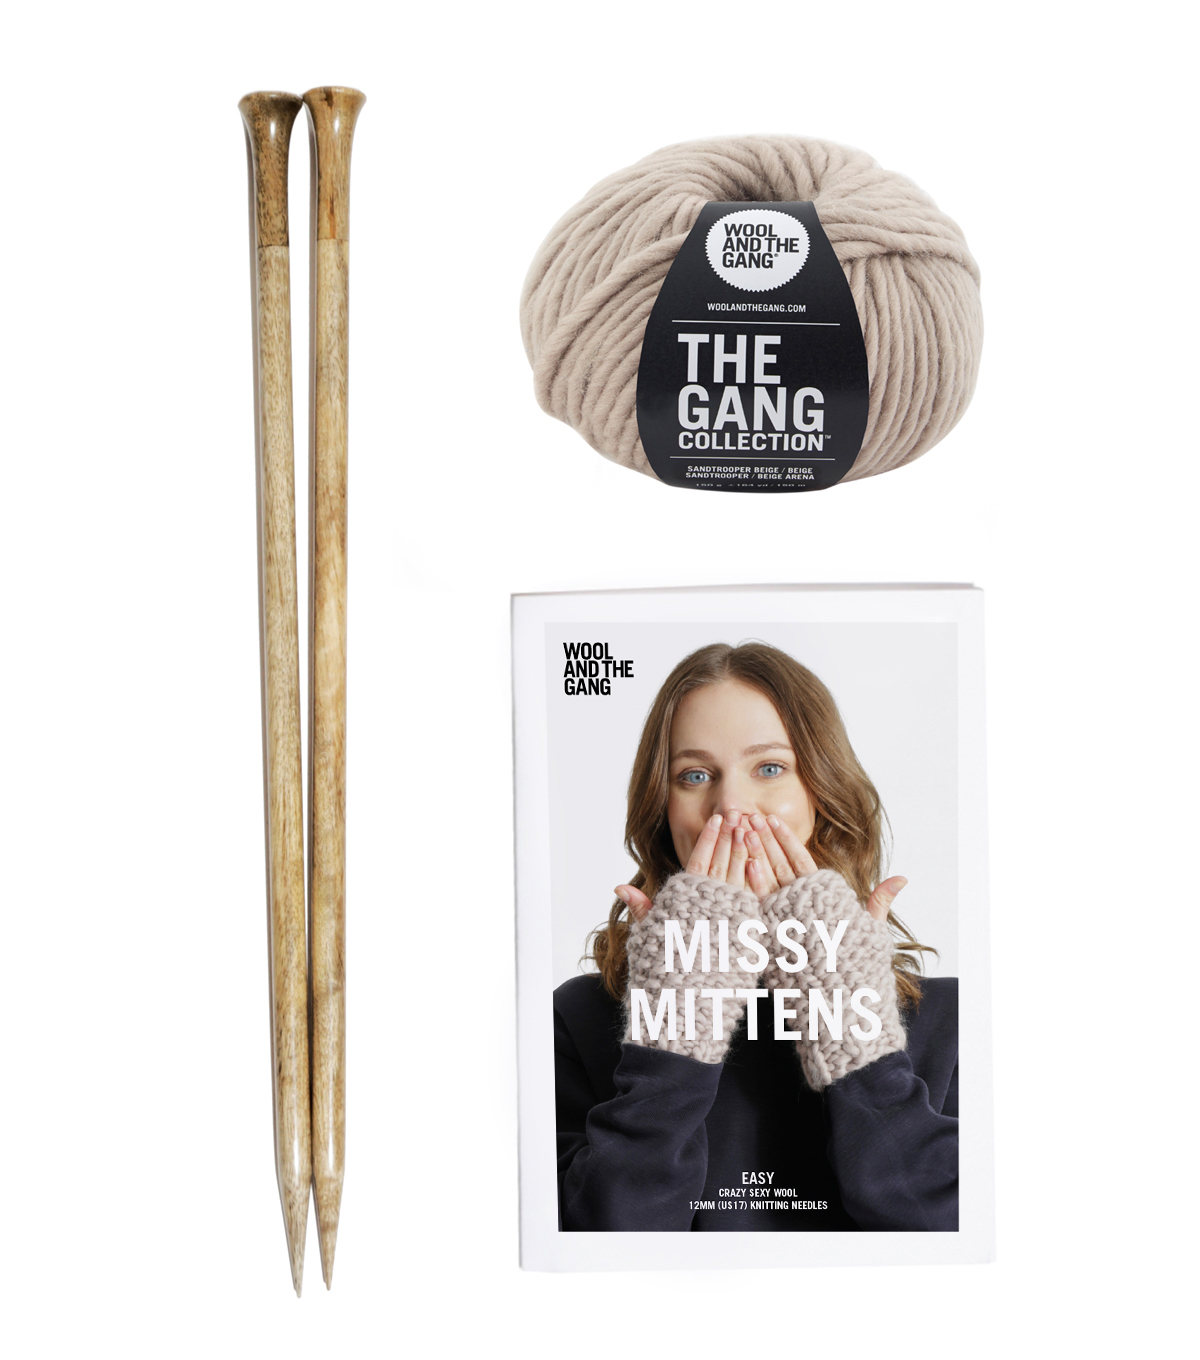 Wool And The Gang Missy Mittens Knit Kit-Sand Trooper Beige